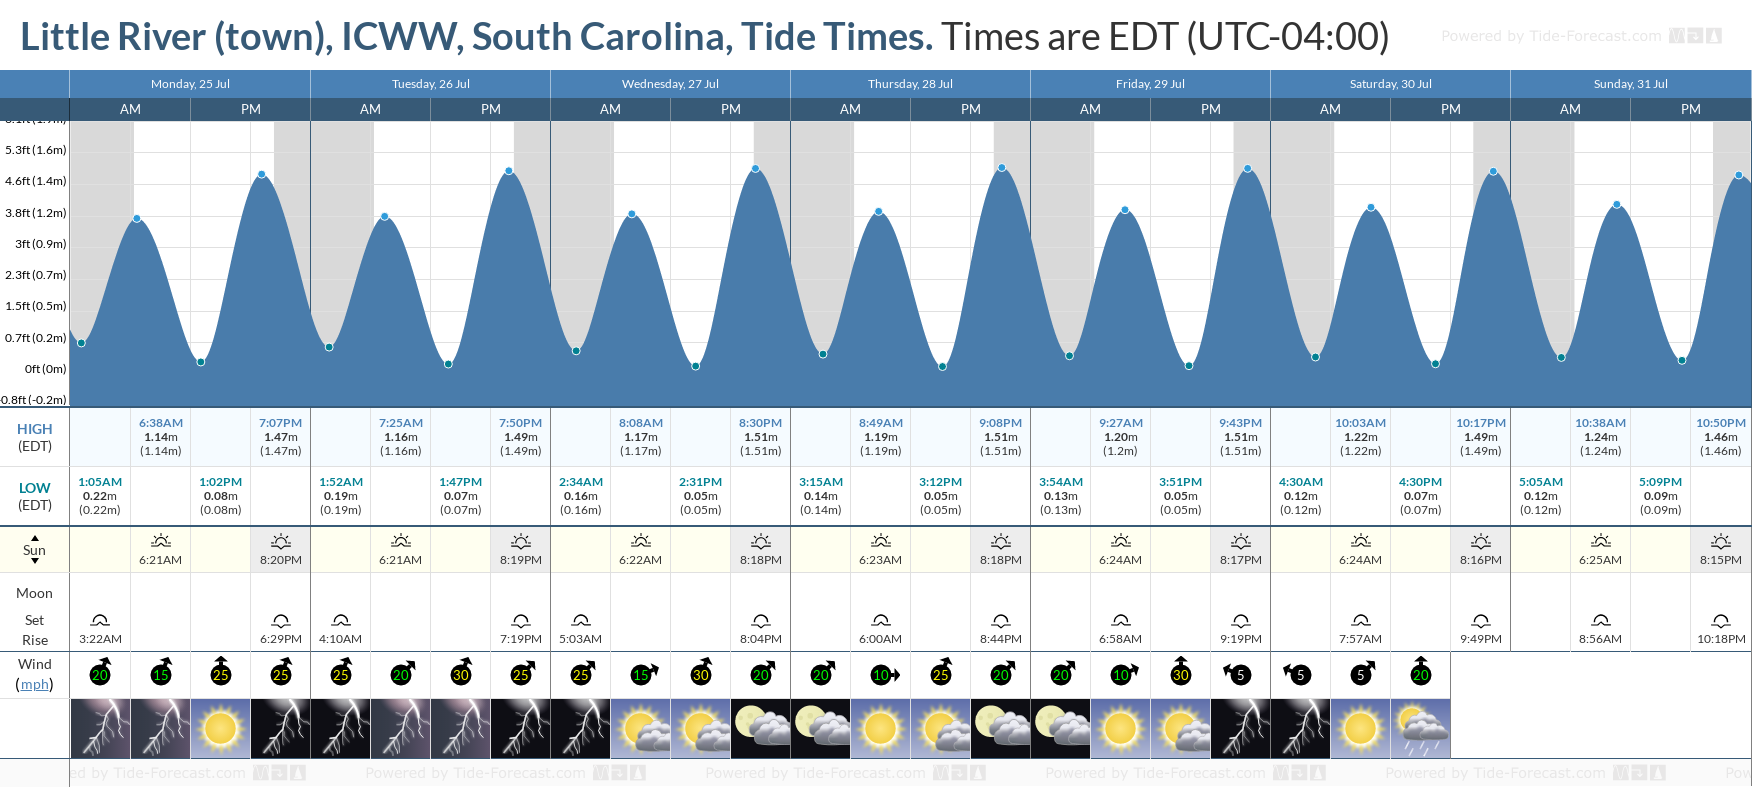 Little River (town), ICWW, South Carolina Tide Chart including high and low tide tide times for the next 7 days